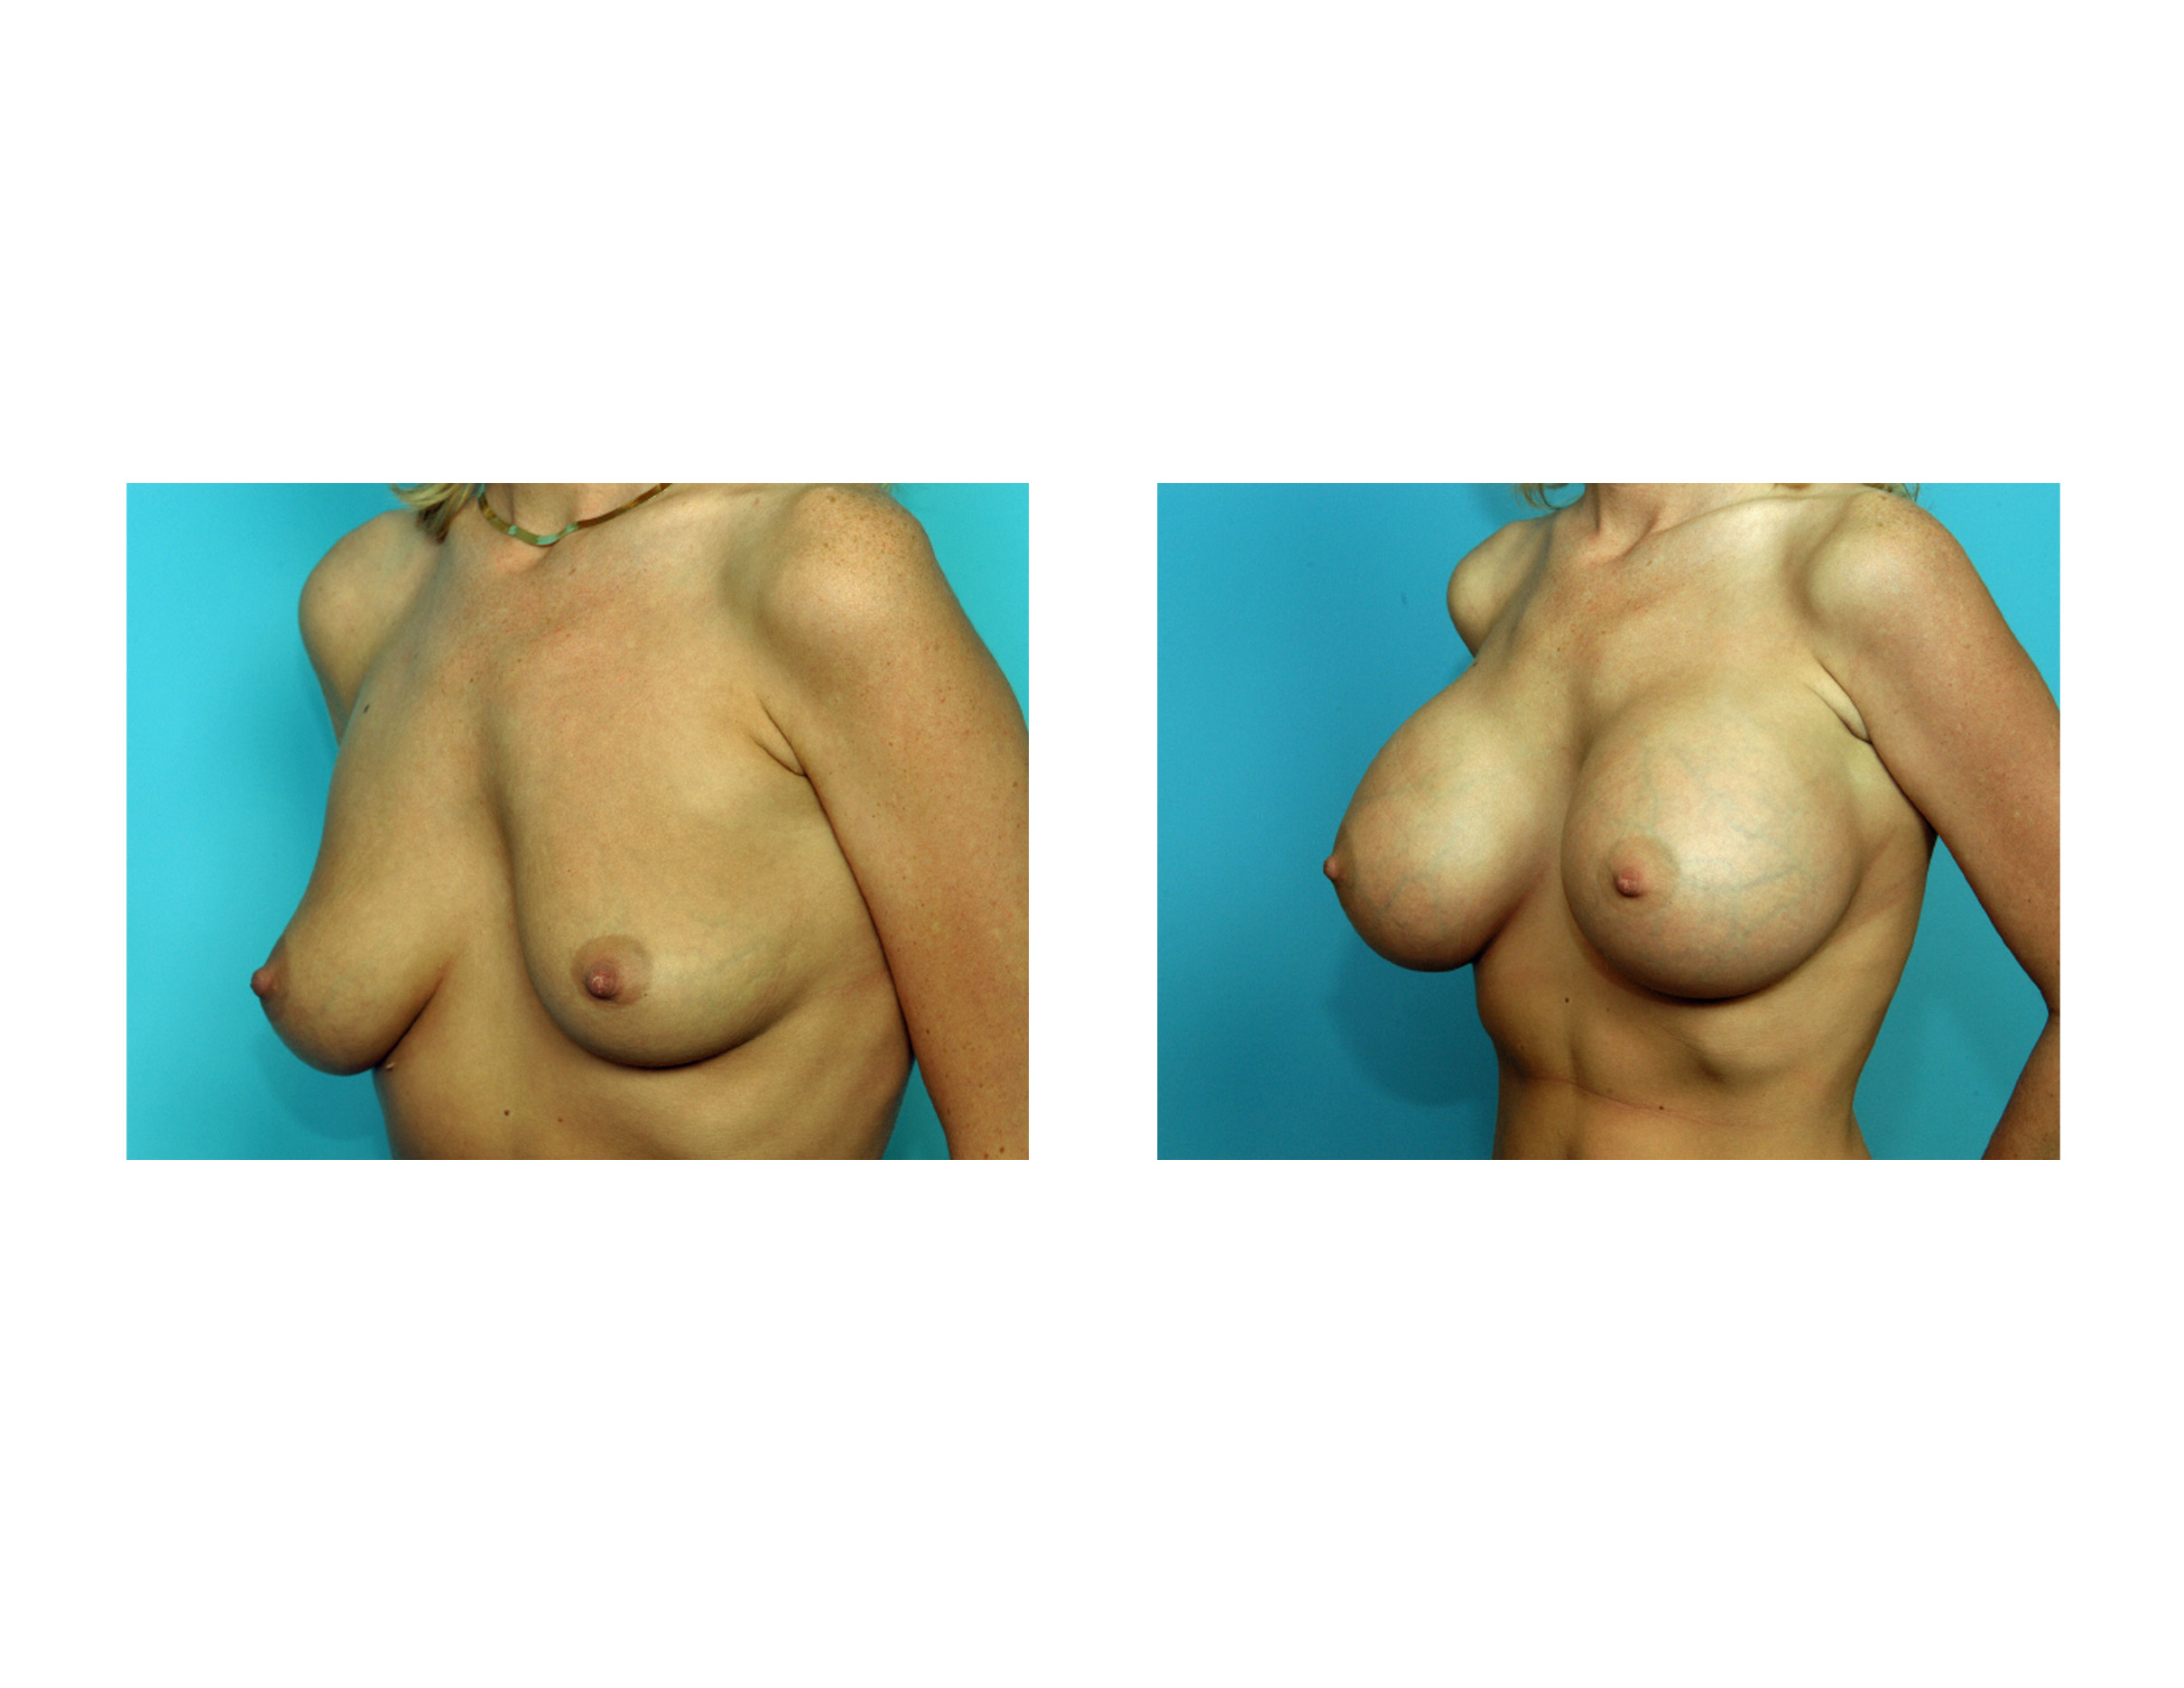 Breast Reduction - The Problem with Large Breasts